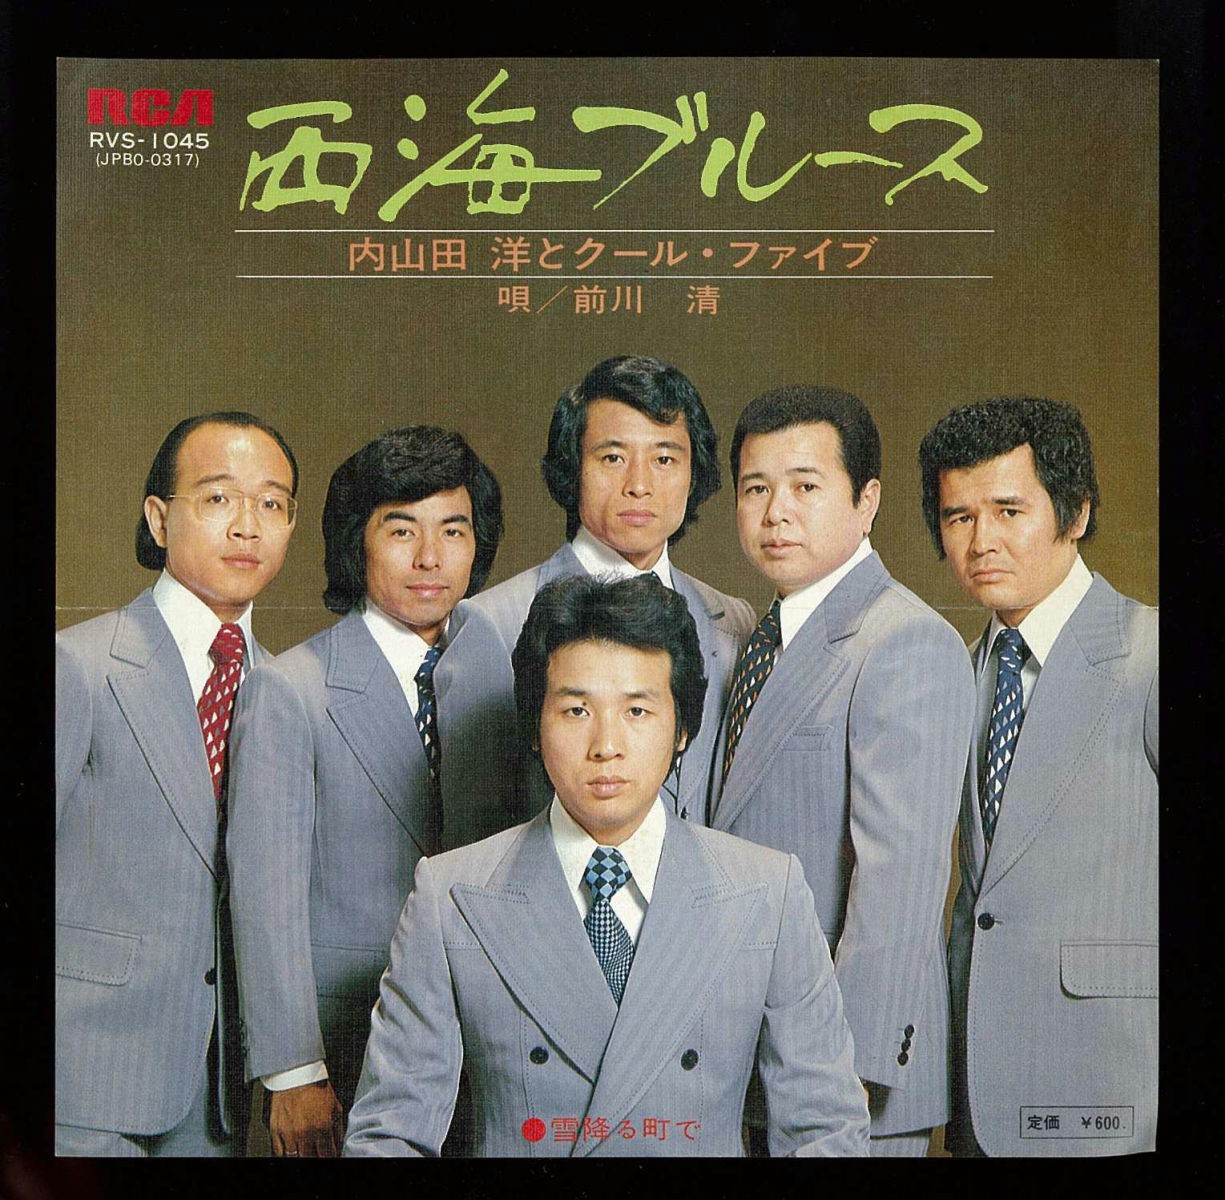 Japan's Top 50 Bestselling Enka Songs - Daniel Morales - Medium